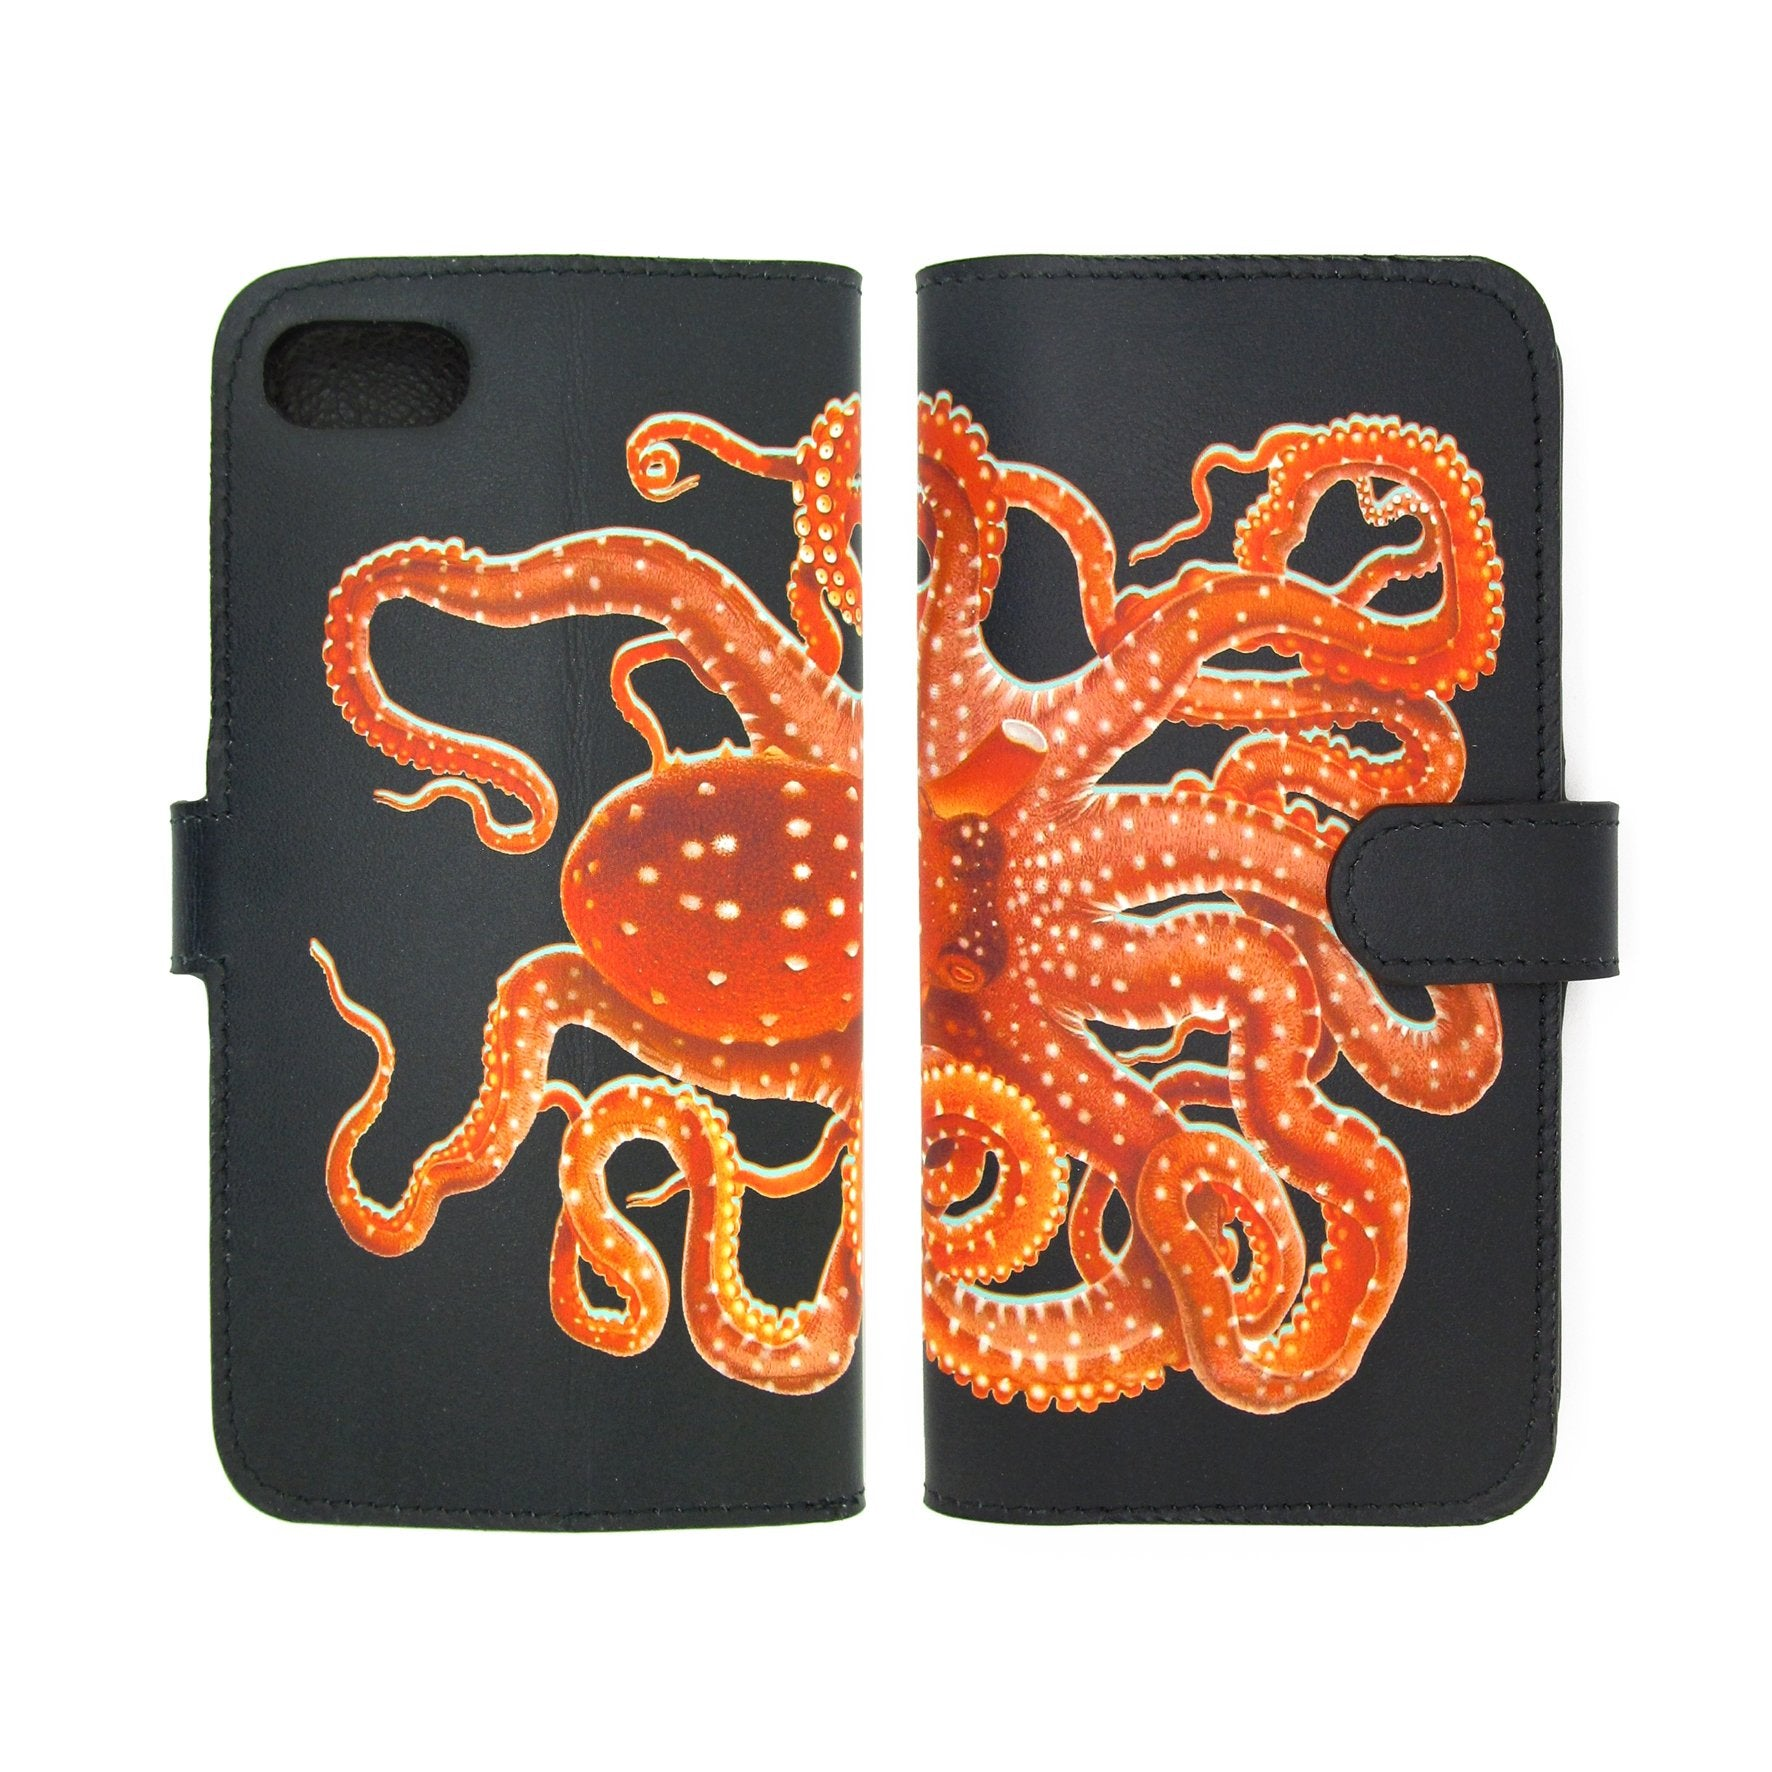 Octopus phone case: leather iPhone XR / iPhone XS / iPhone XS Max phone case - Tovi Sorga designer accessories